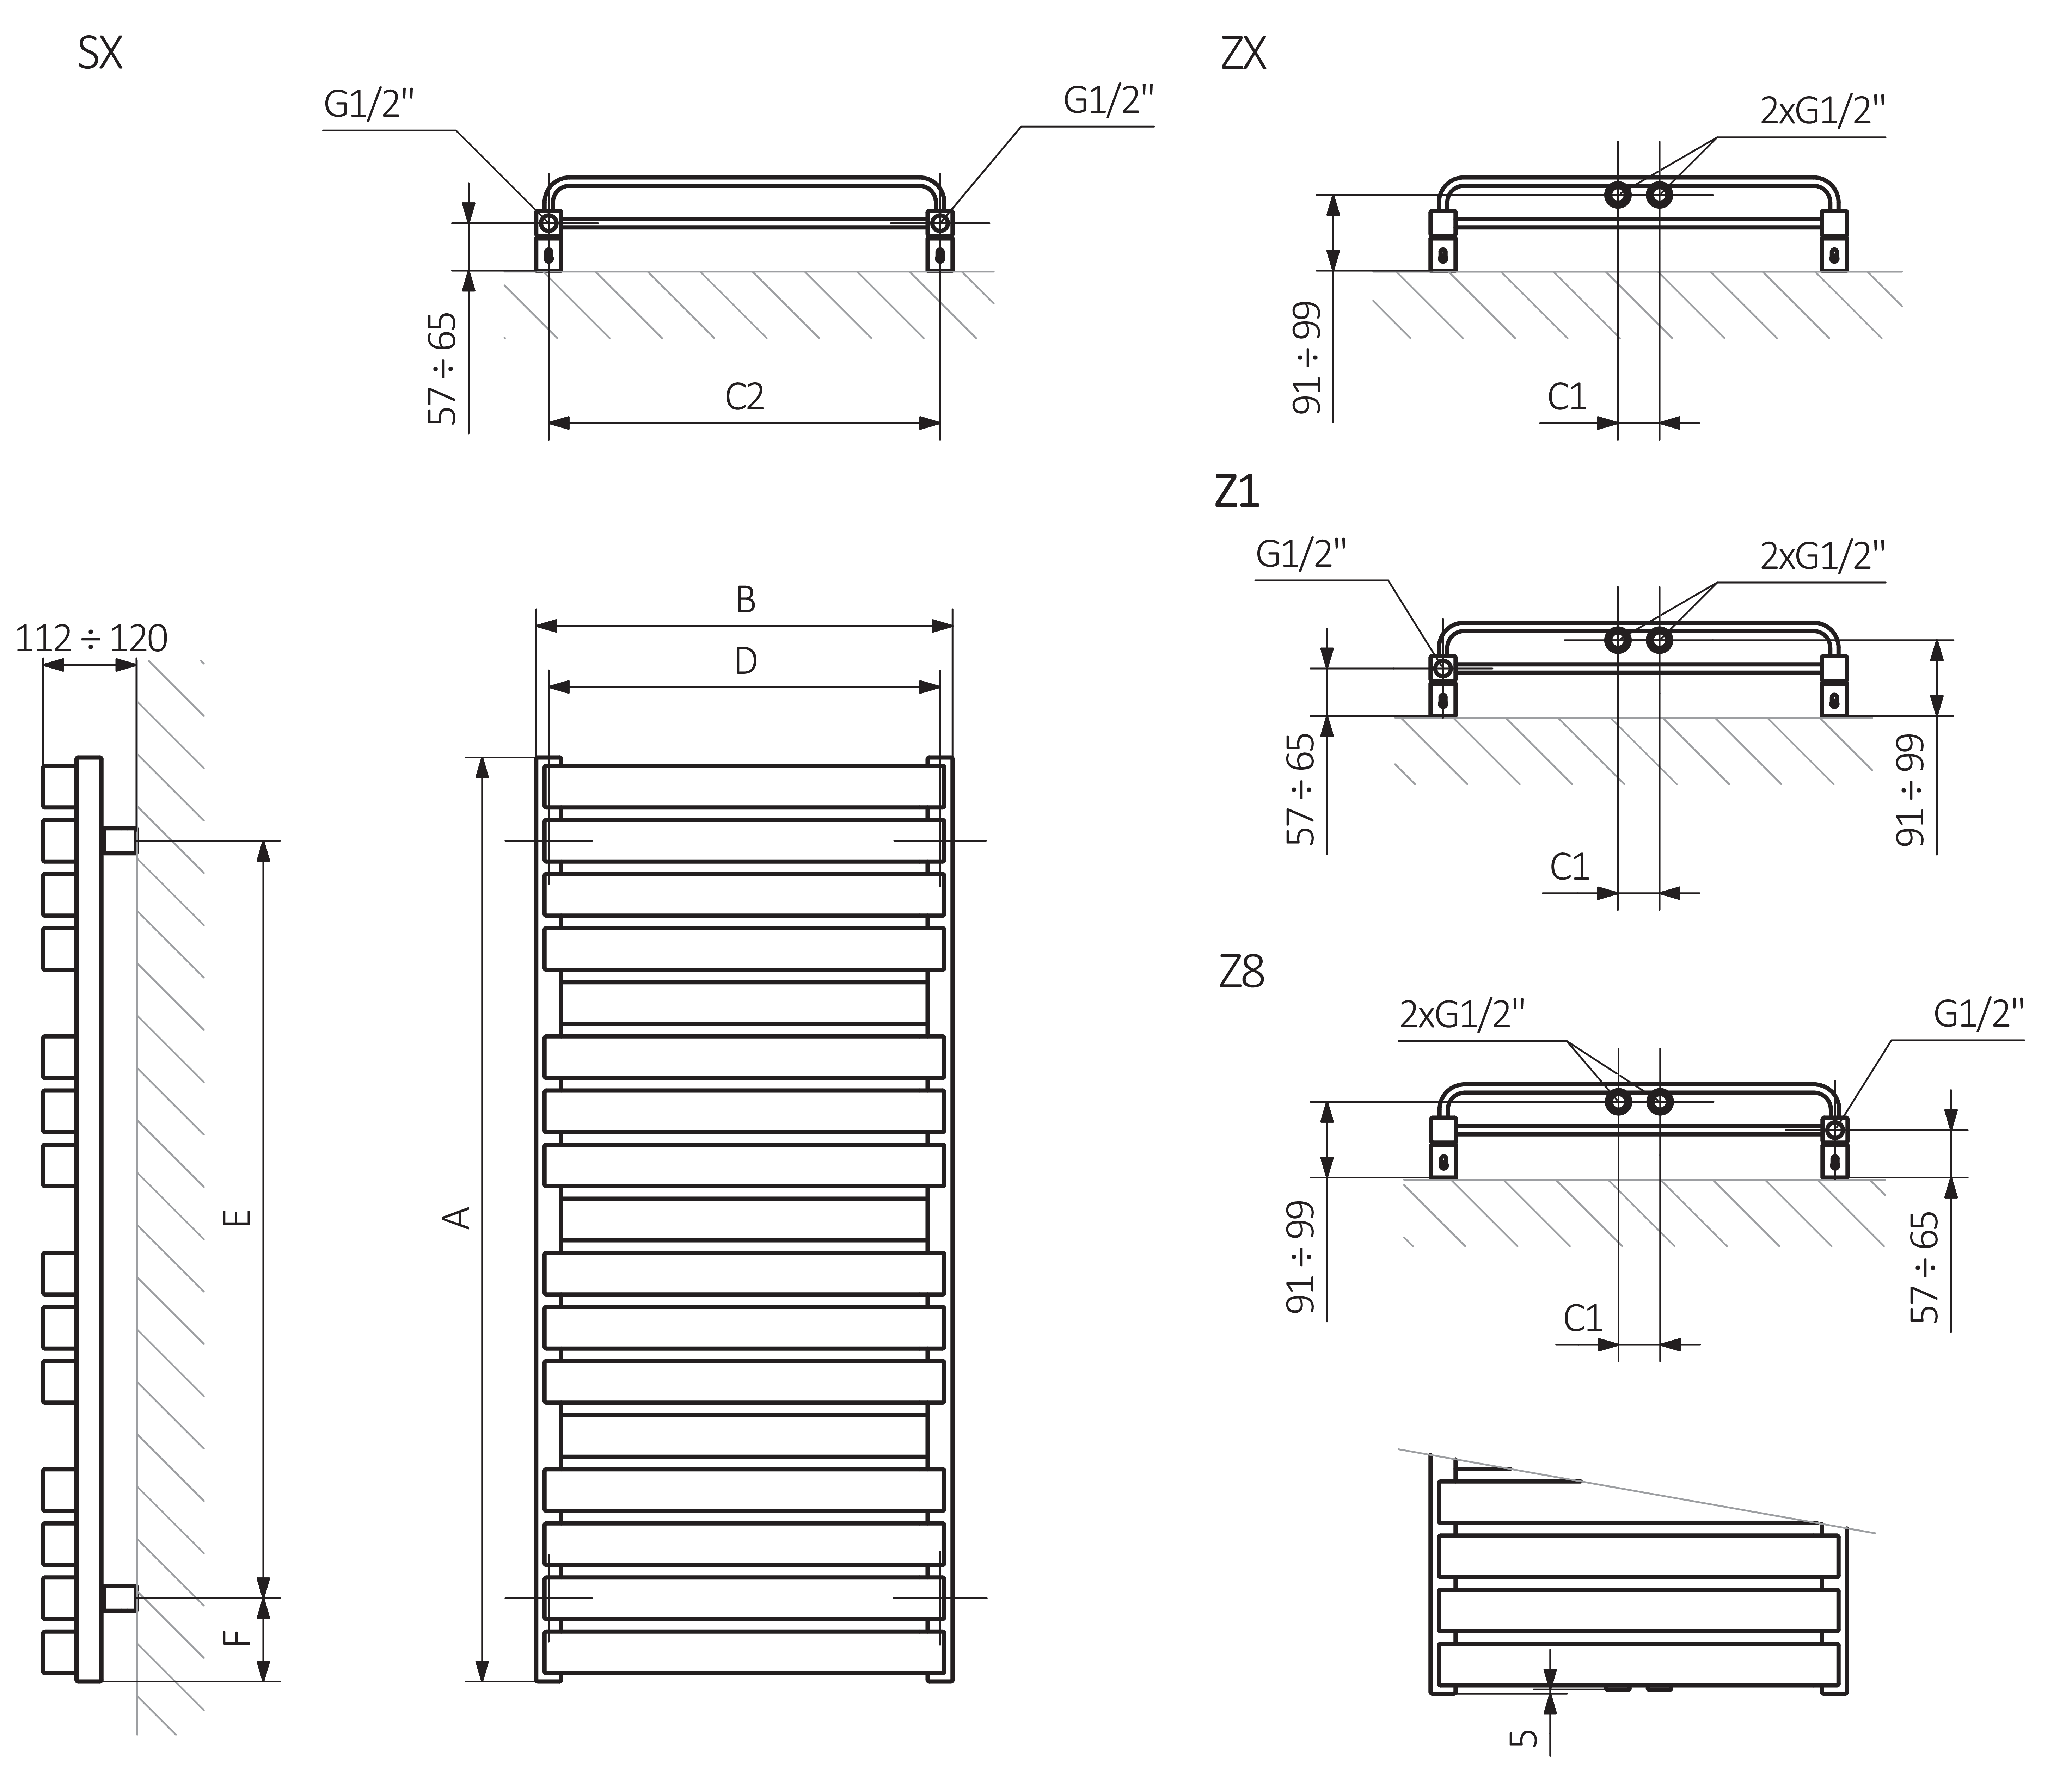 A – Height, B – Width, C1-C5 – Distance between pipe centres, D – Horizontal distance between mounting bracket centres, E – Vertical distance between mounting brackets, F – Distance between a mounting bracket and the bottom of the radiator